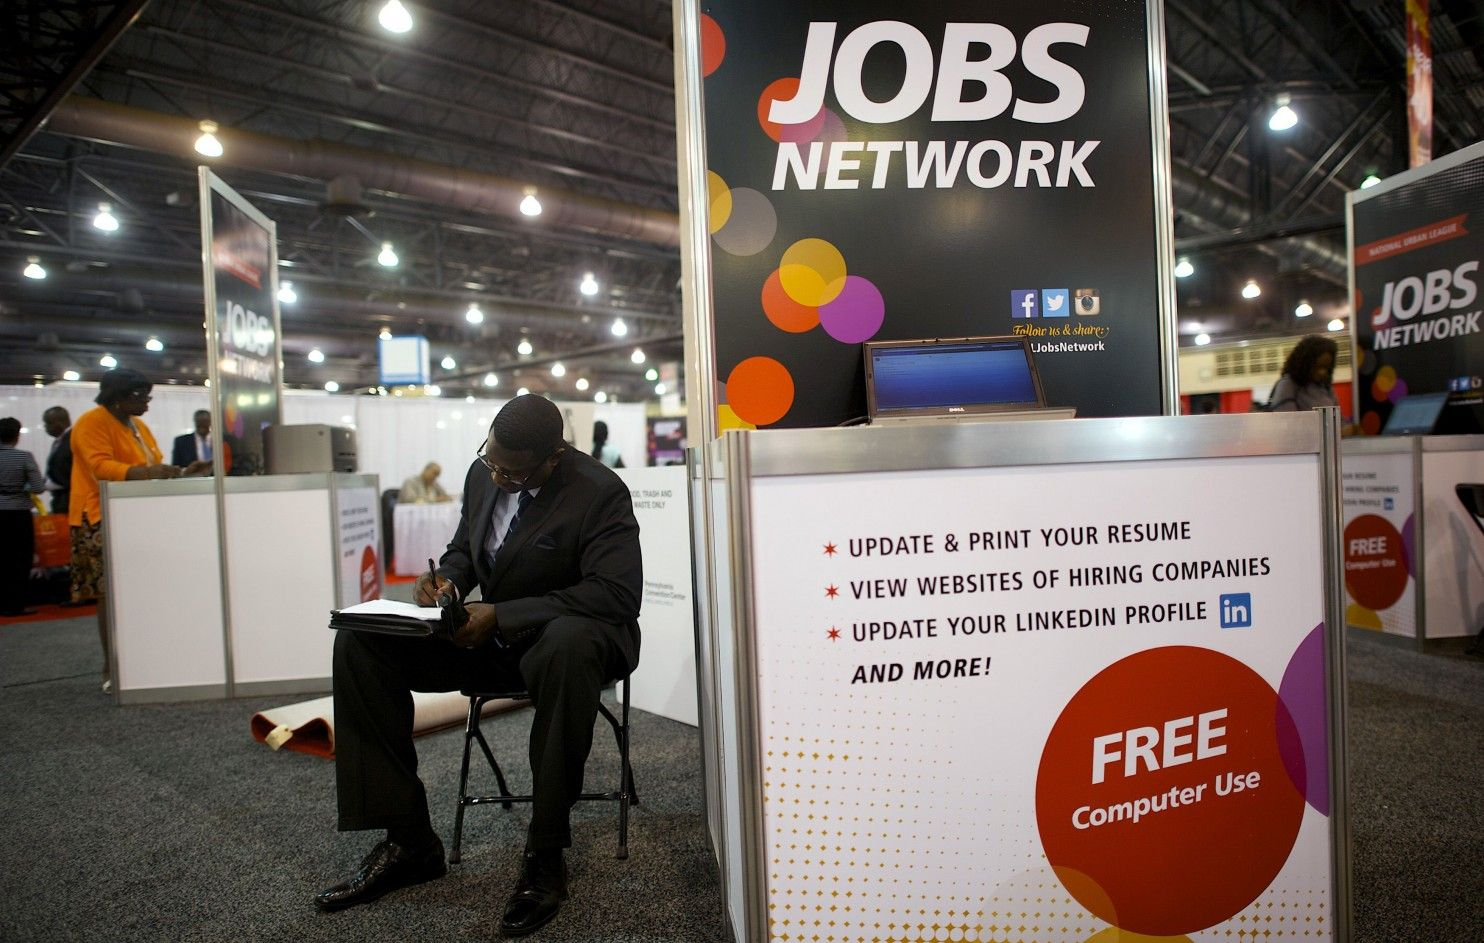 Why The Improvement In The Black Unemployment Rate Will Be Short Lived Marketing Jobs Job Network Job Opening